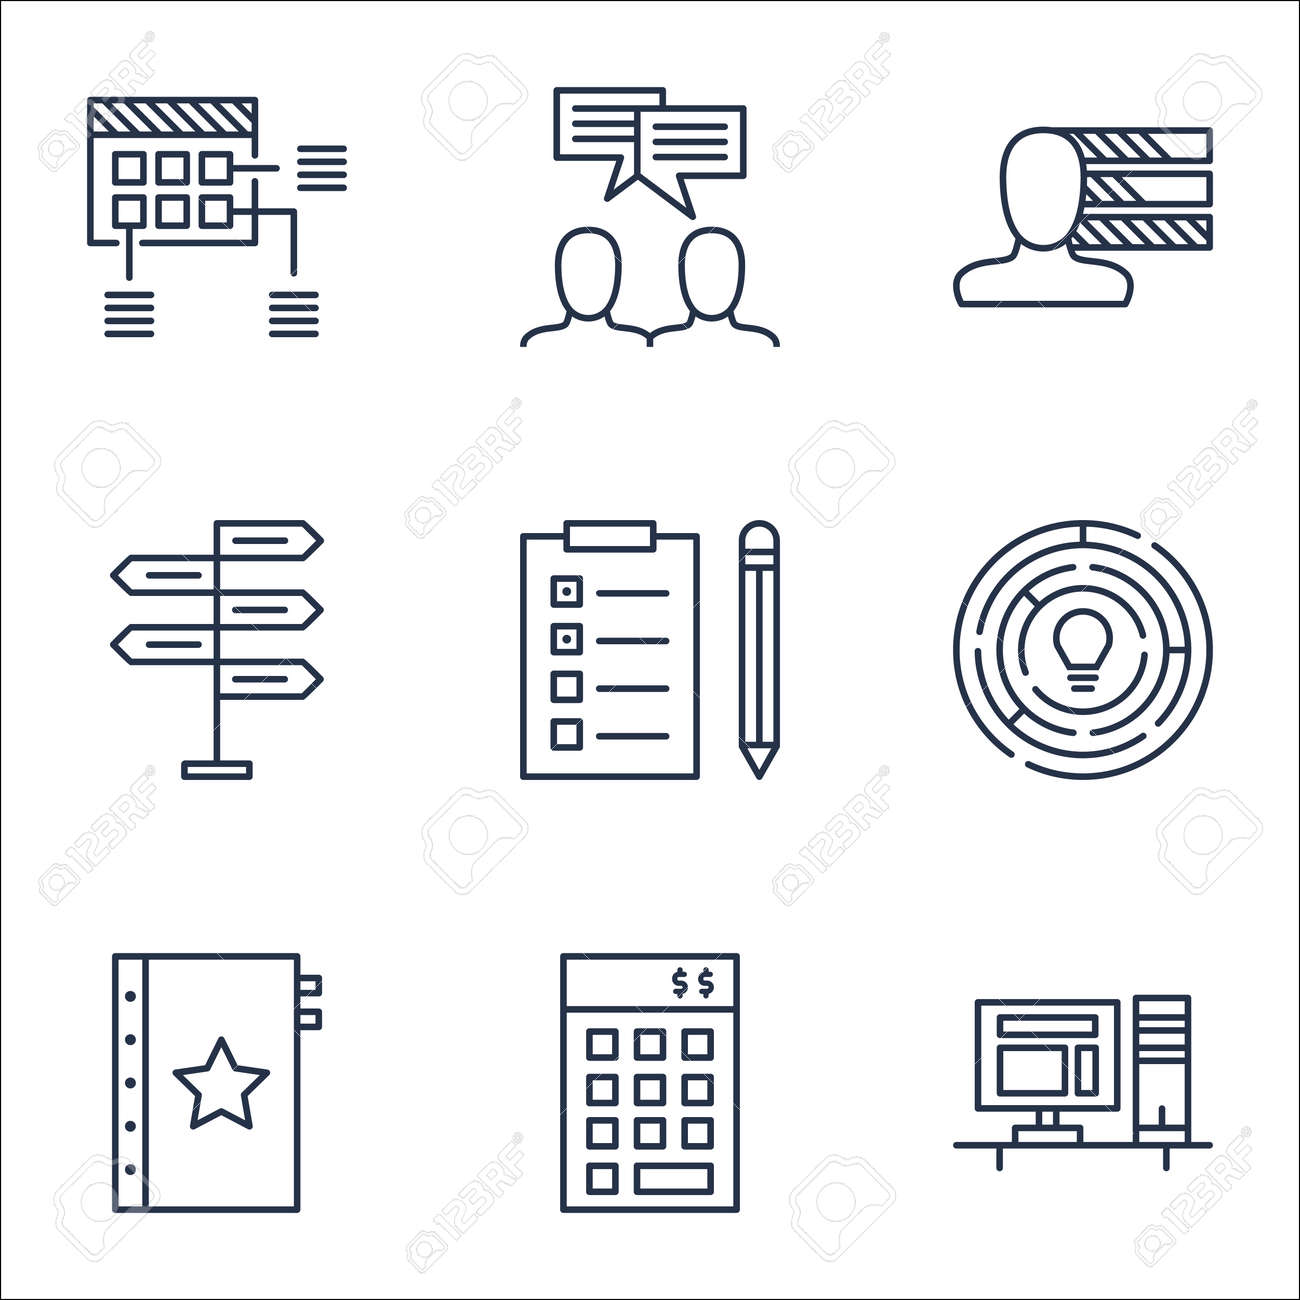 set of project management icons on schedule personal skills set of project management icons on schedule personal skills and innovation topics editable vector